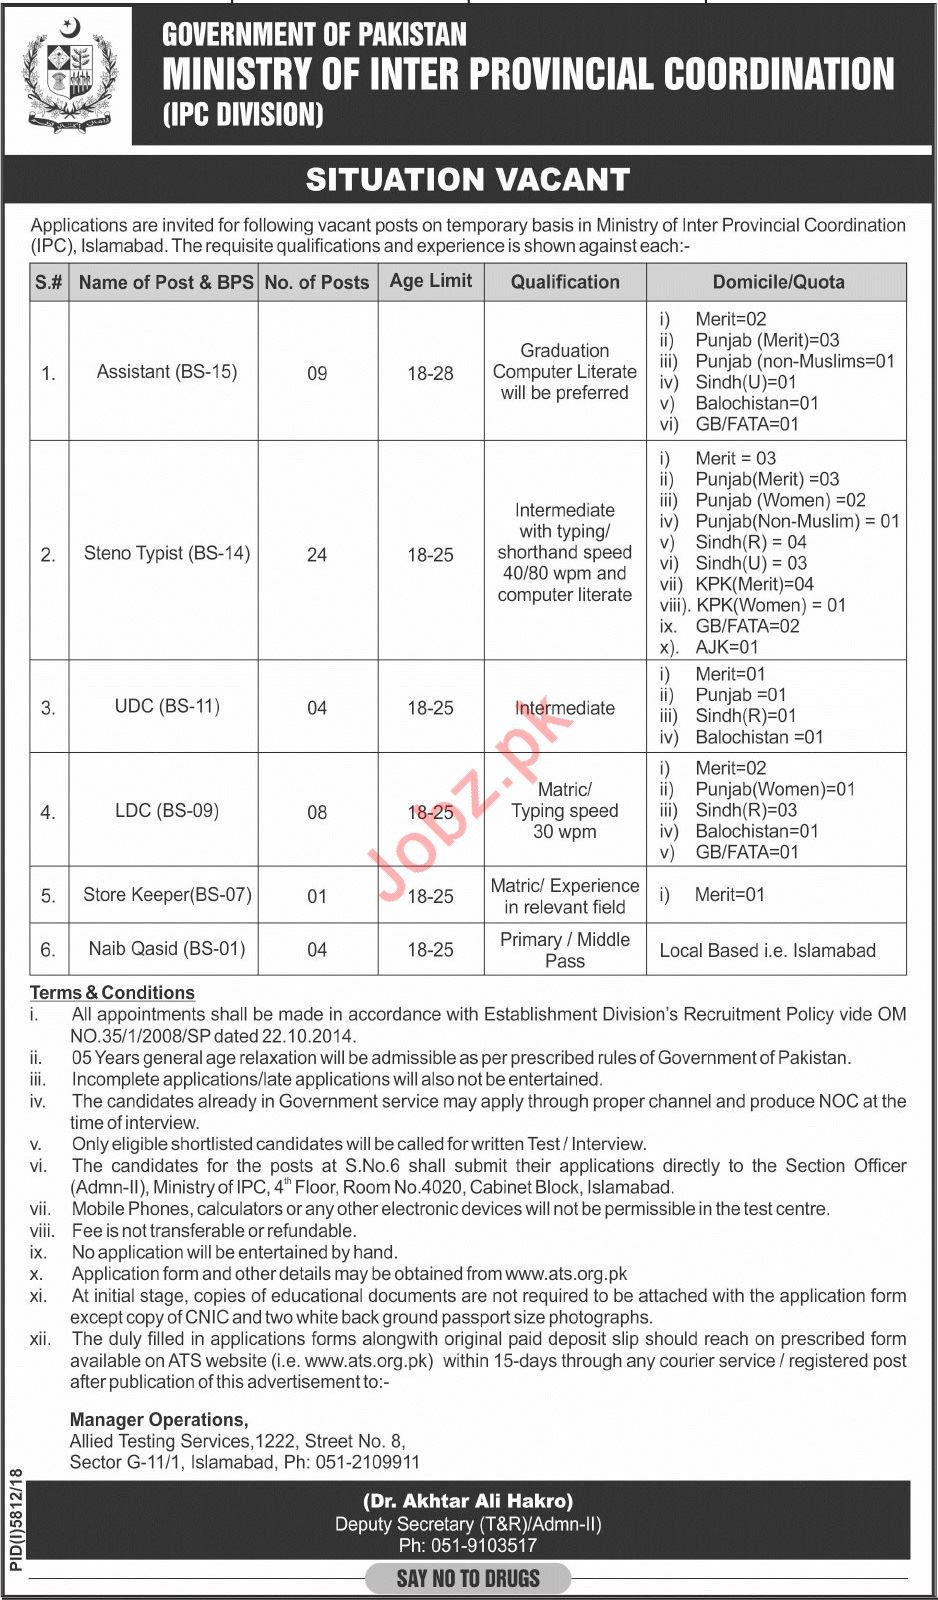 ministry of inter provincial coordination jobs 2019 via ats 2019 job advertisement pakistan